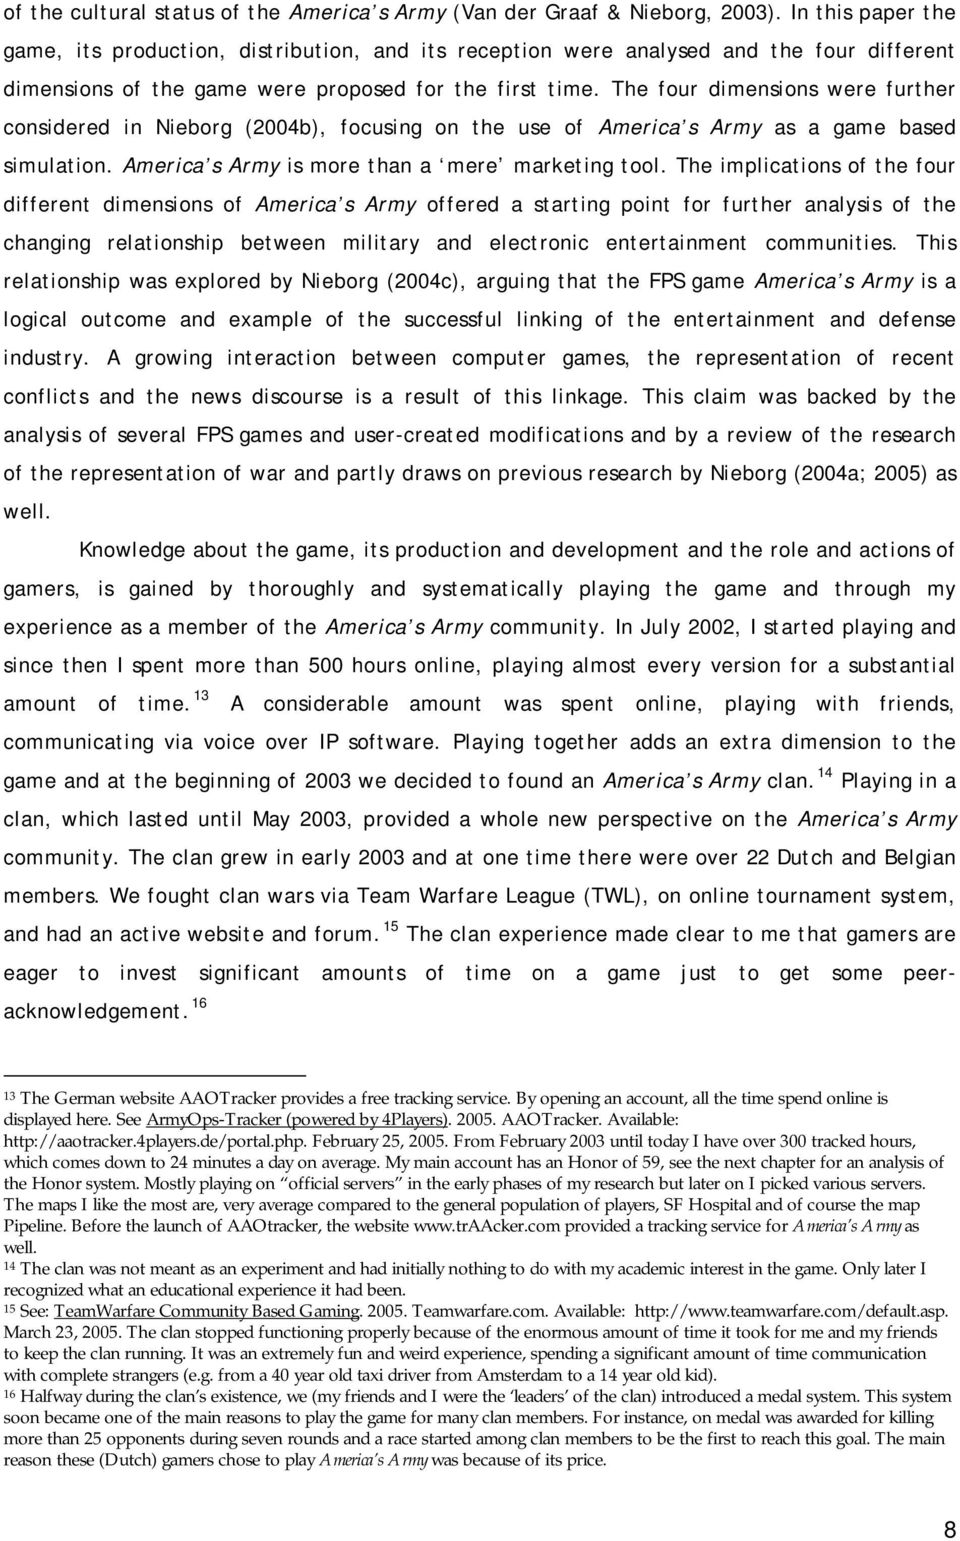 The four dimensions were further considered in Nieborg (2004b), focusing on the use of America s Army as a game based simulation. America s Army is more than a mere marketing tool.